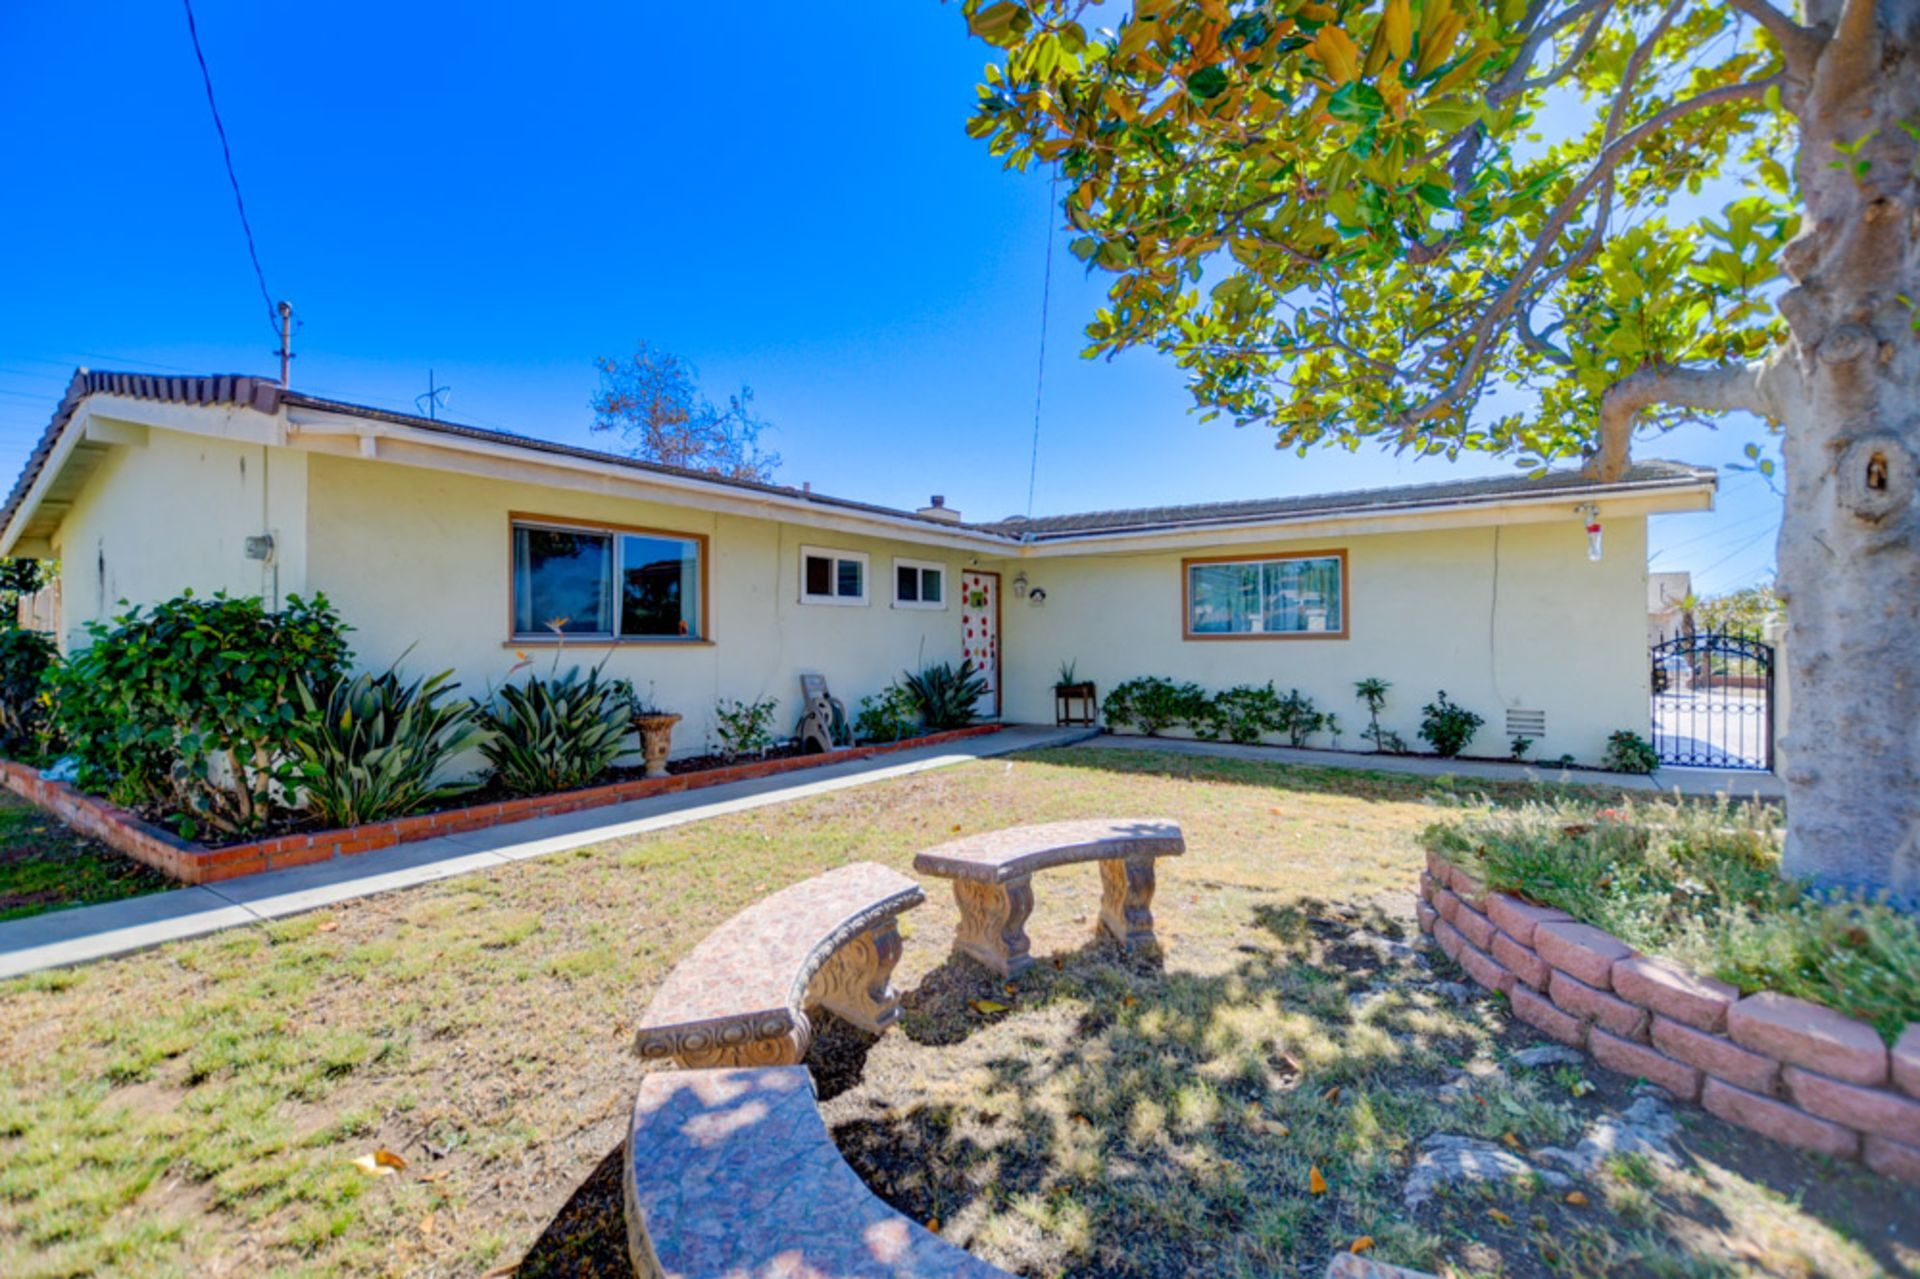 Another Home Sold by Laura Kelley in the Mount Streets of Clairemont!! (SHHH…)